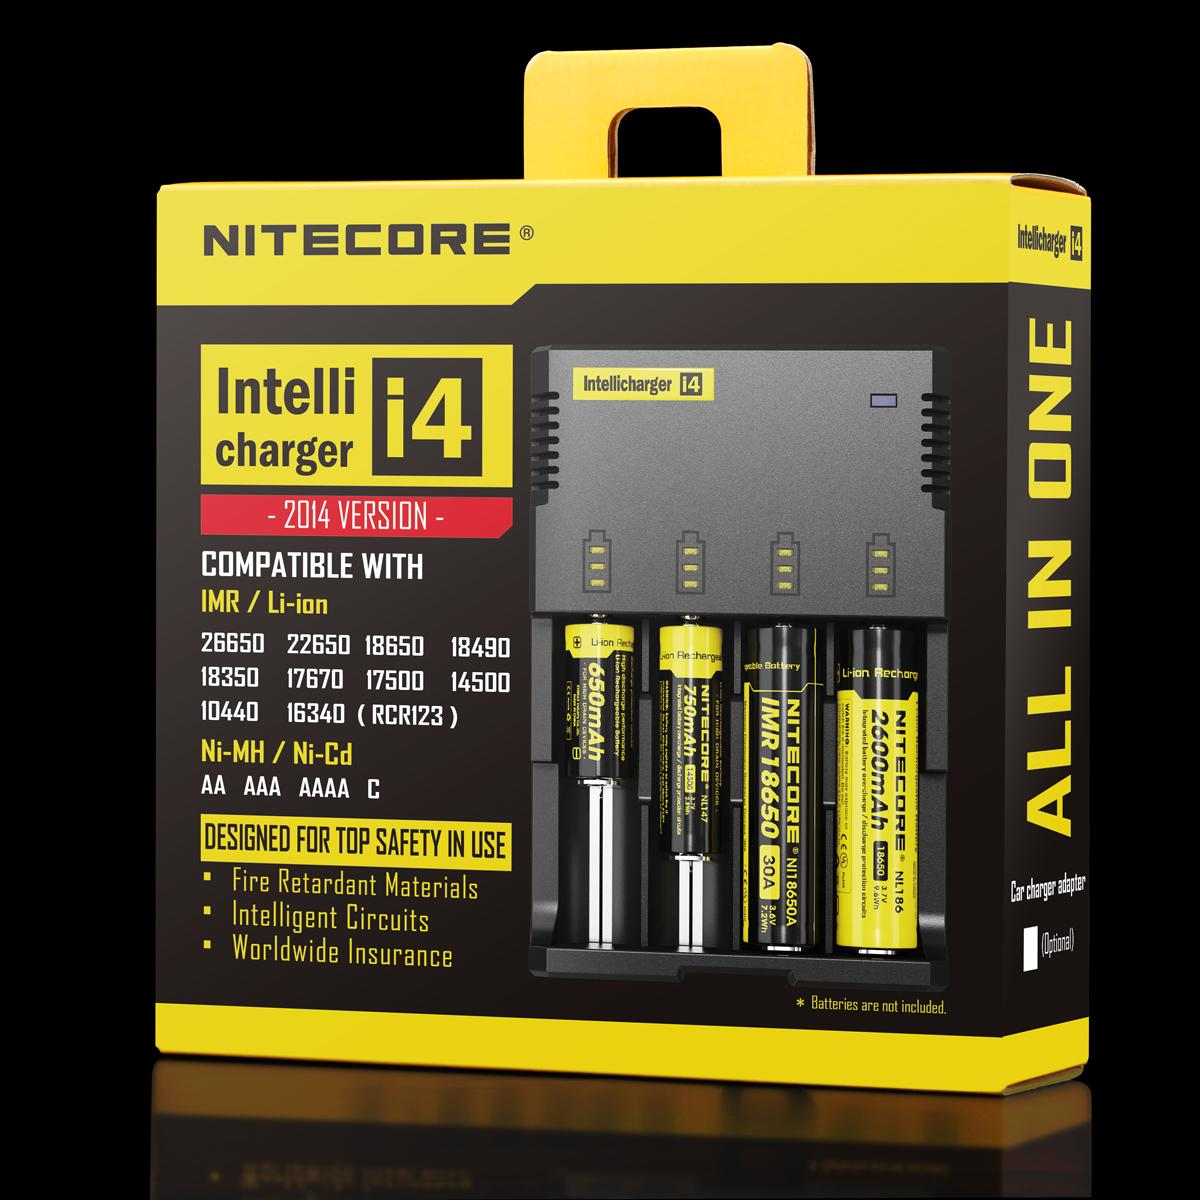 Nitecore I4 charger in Ireland